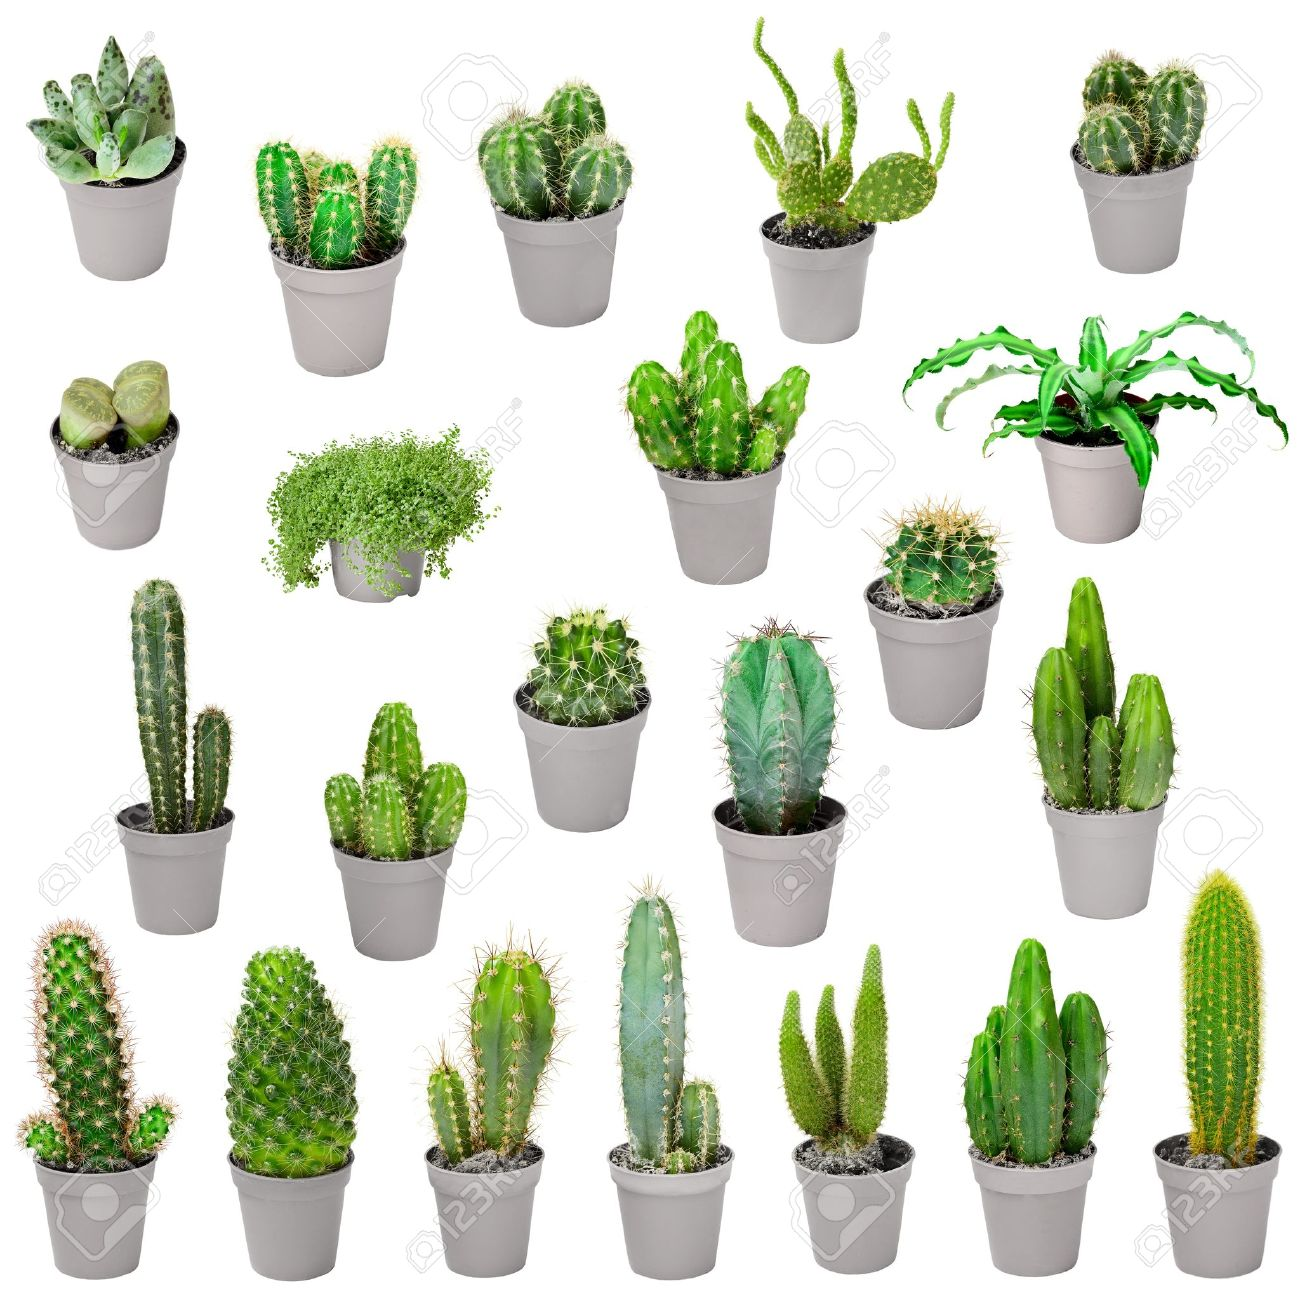 Set Of Indoor Plants In Pots Cacti And Other Succulents Stock Photo Picture And Royalty Free Image Image 17187812